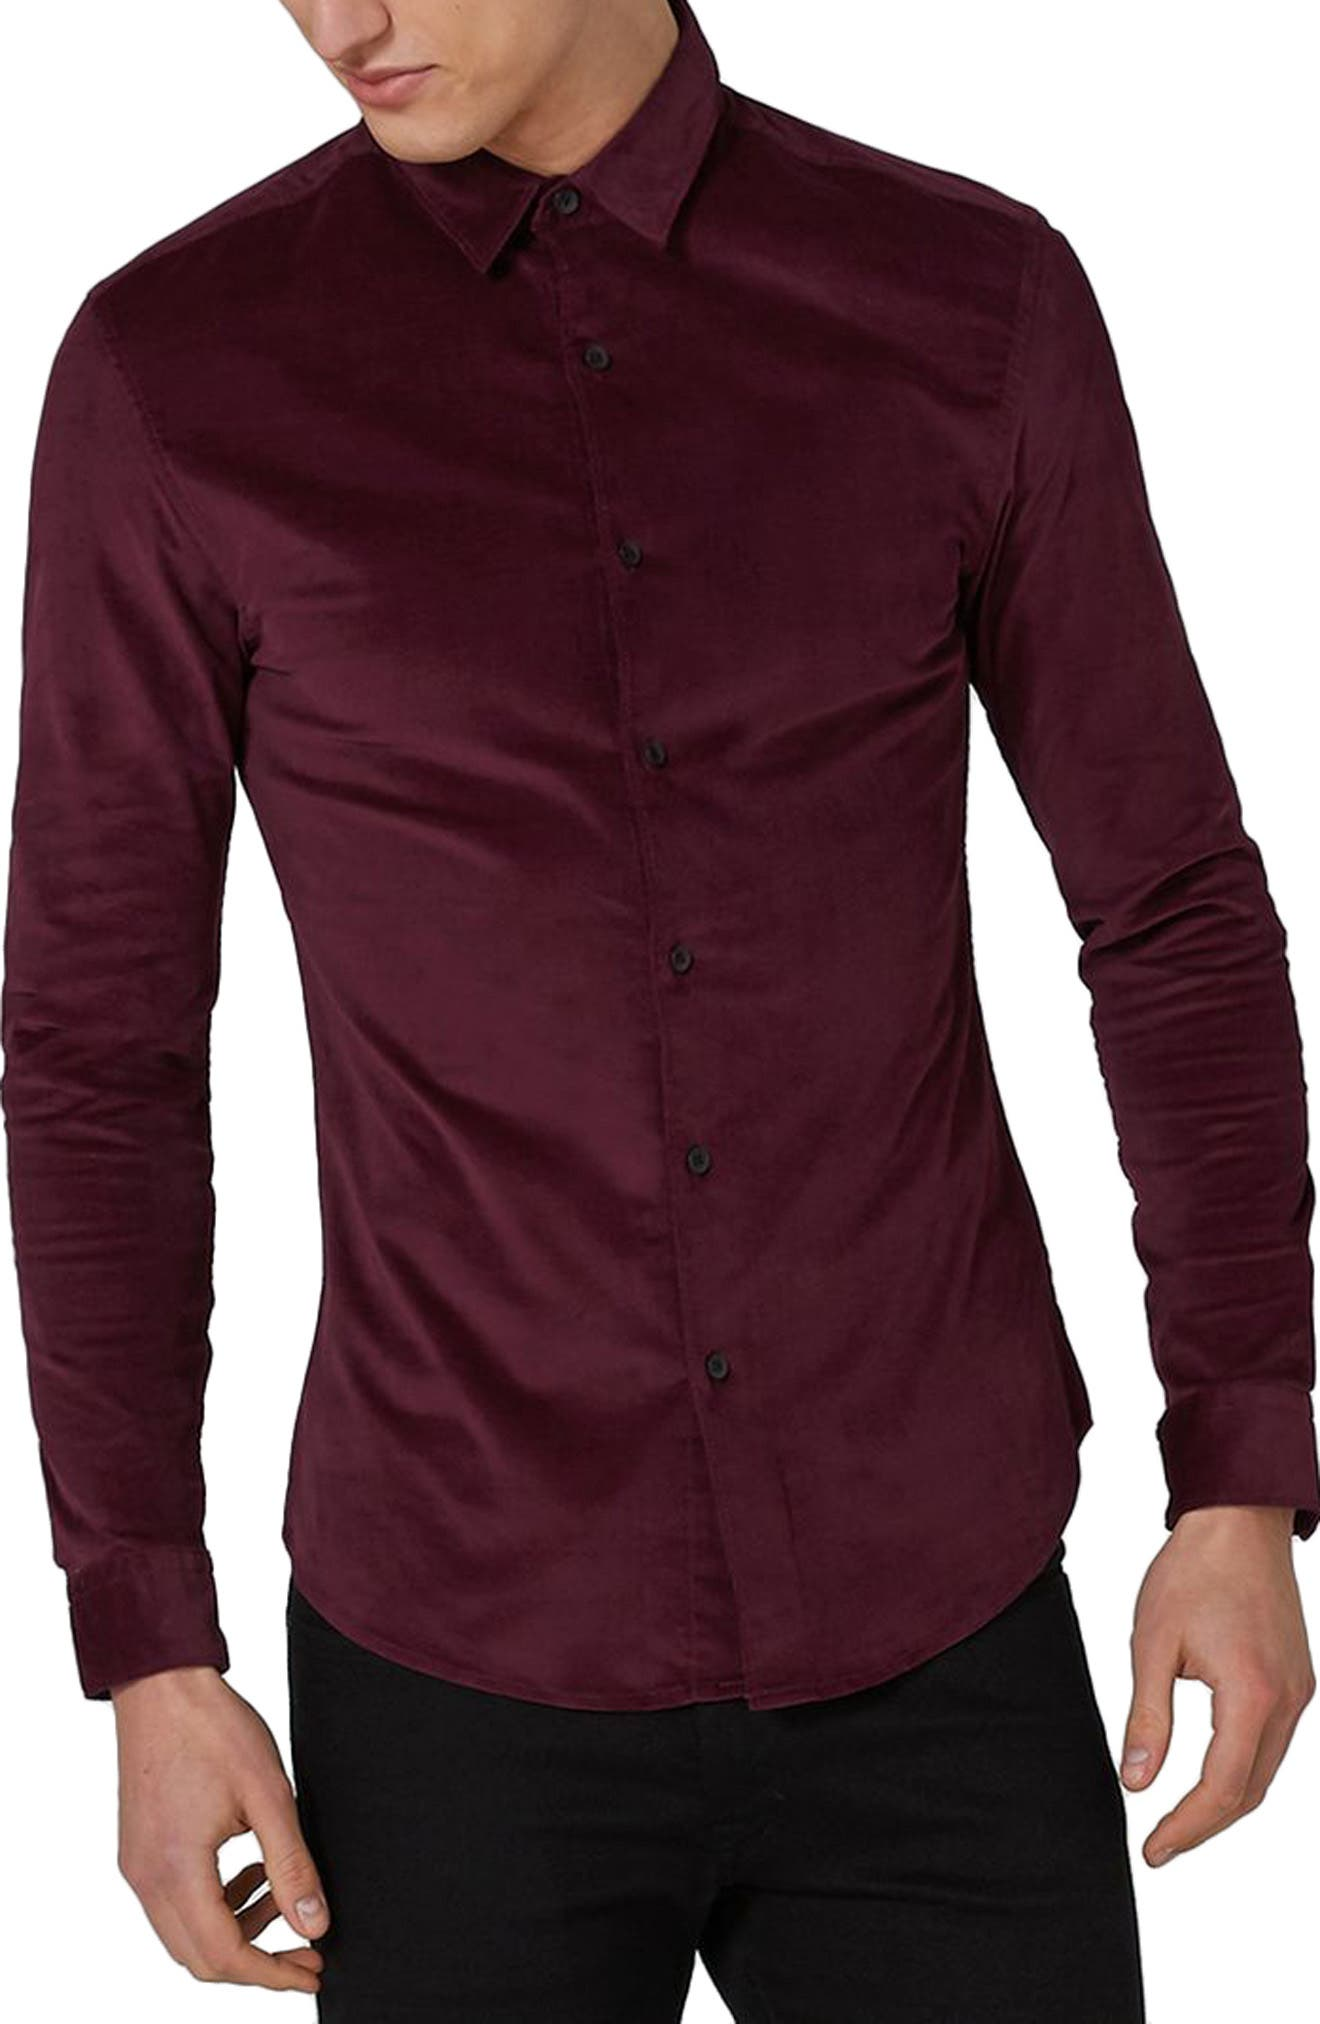 Muscle Fit Corduroy Shirt,                             Main thumbnail 1, color,                             Burgundy